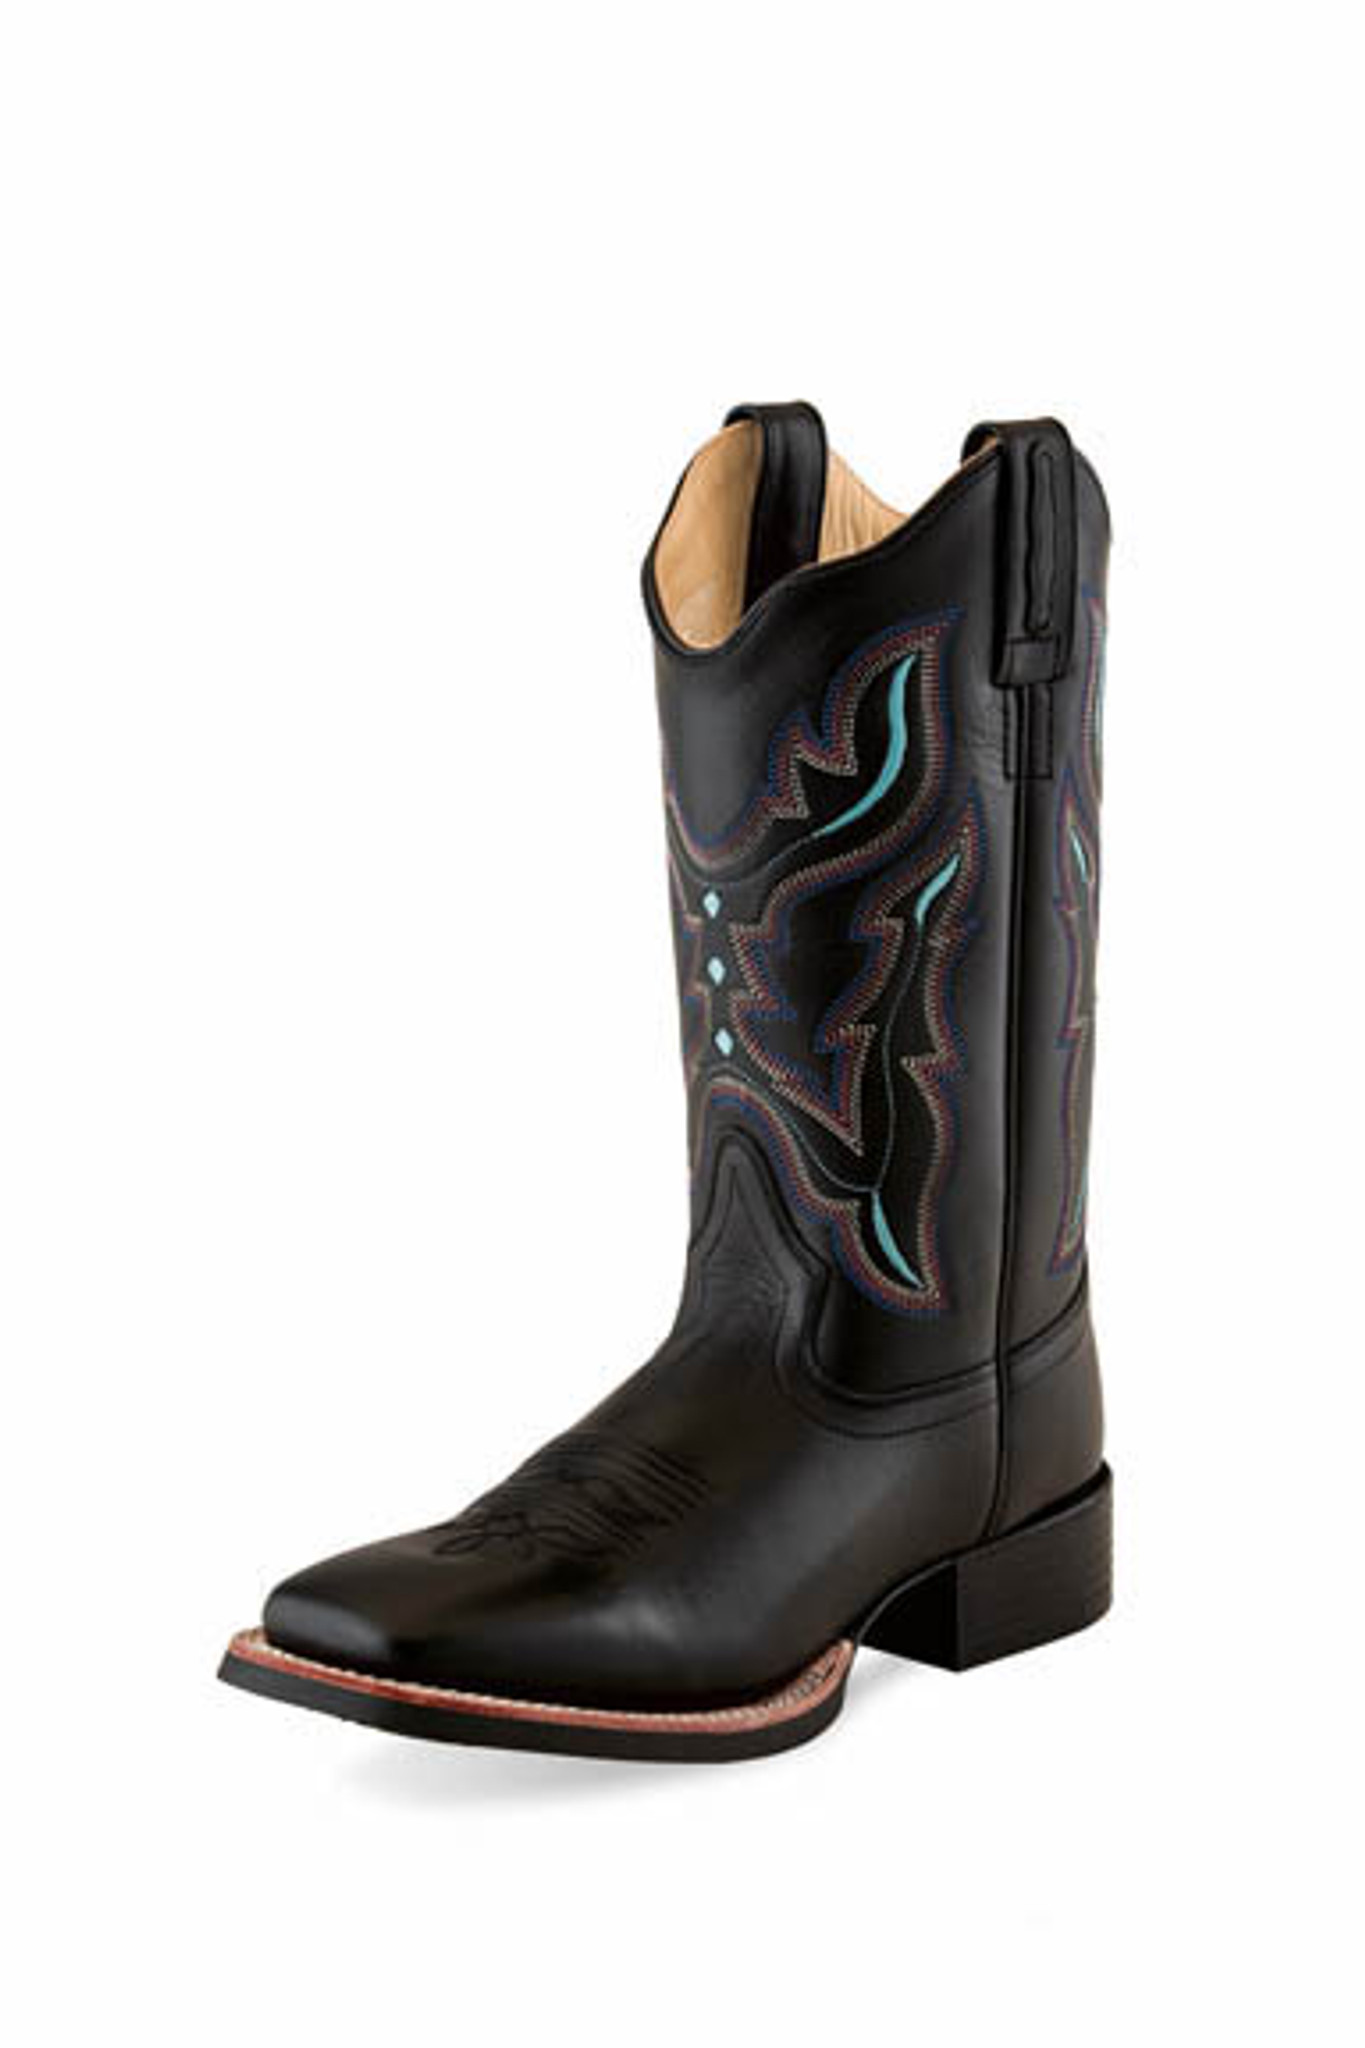 Old West Boot, Square Toe, Black